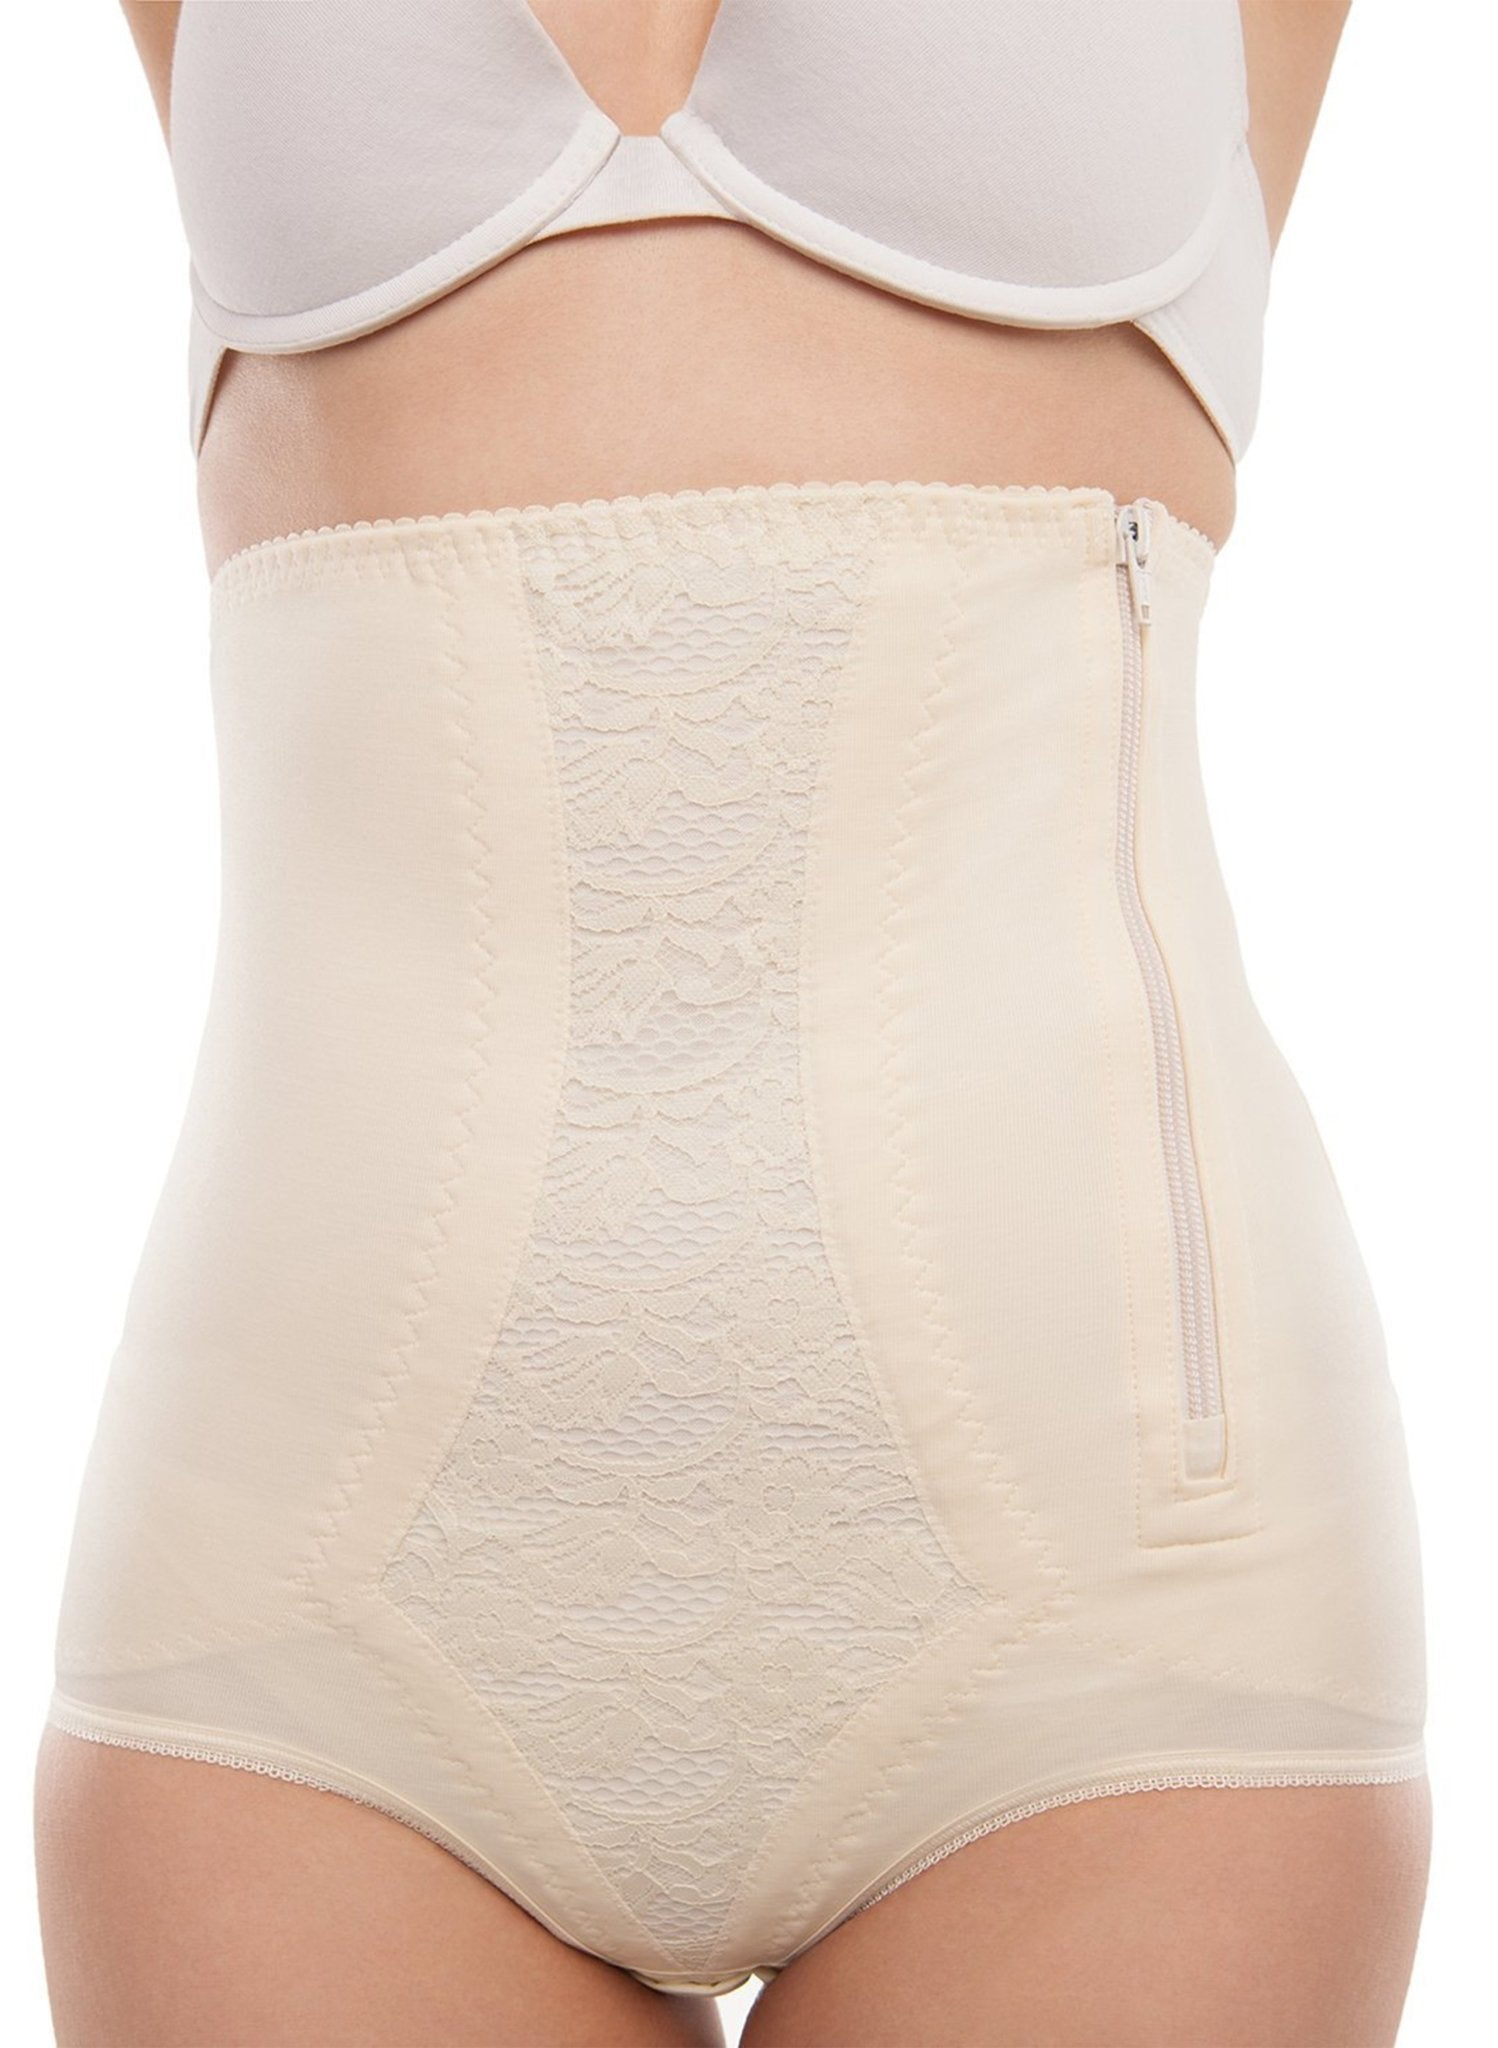 High Waist Abdominal Support Girdle - Cream - Mums and Bumps